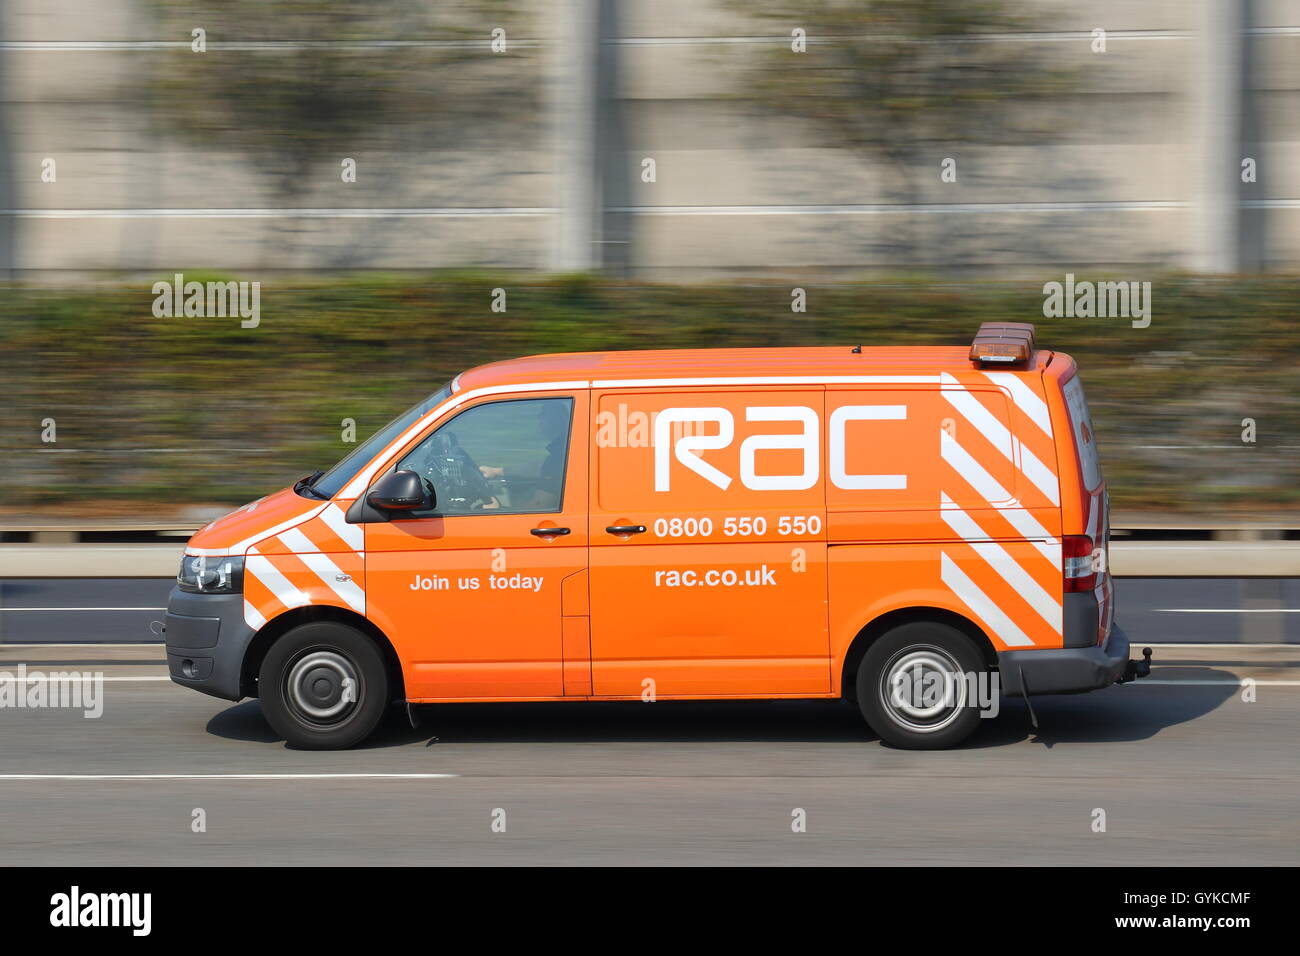 dc0e53ab59 Rac Van Stock Photos   Rac Van Stock Images - Alamy